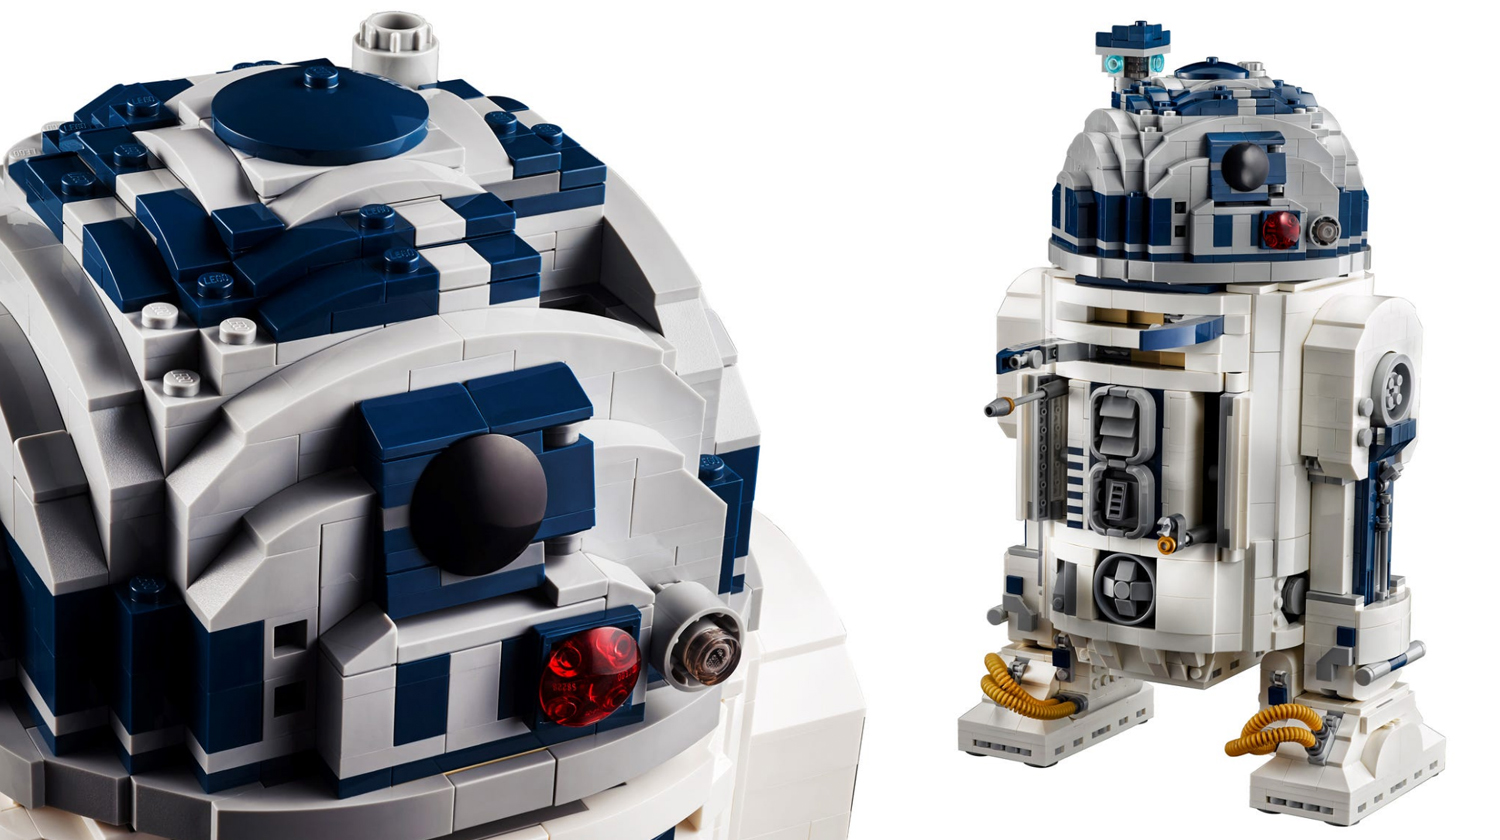 Lego May 2022 Calendar.The Best Star Wars Lego Sets Of 2021 Great Deals And More Space